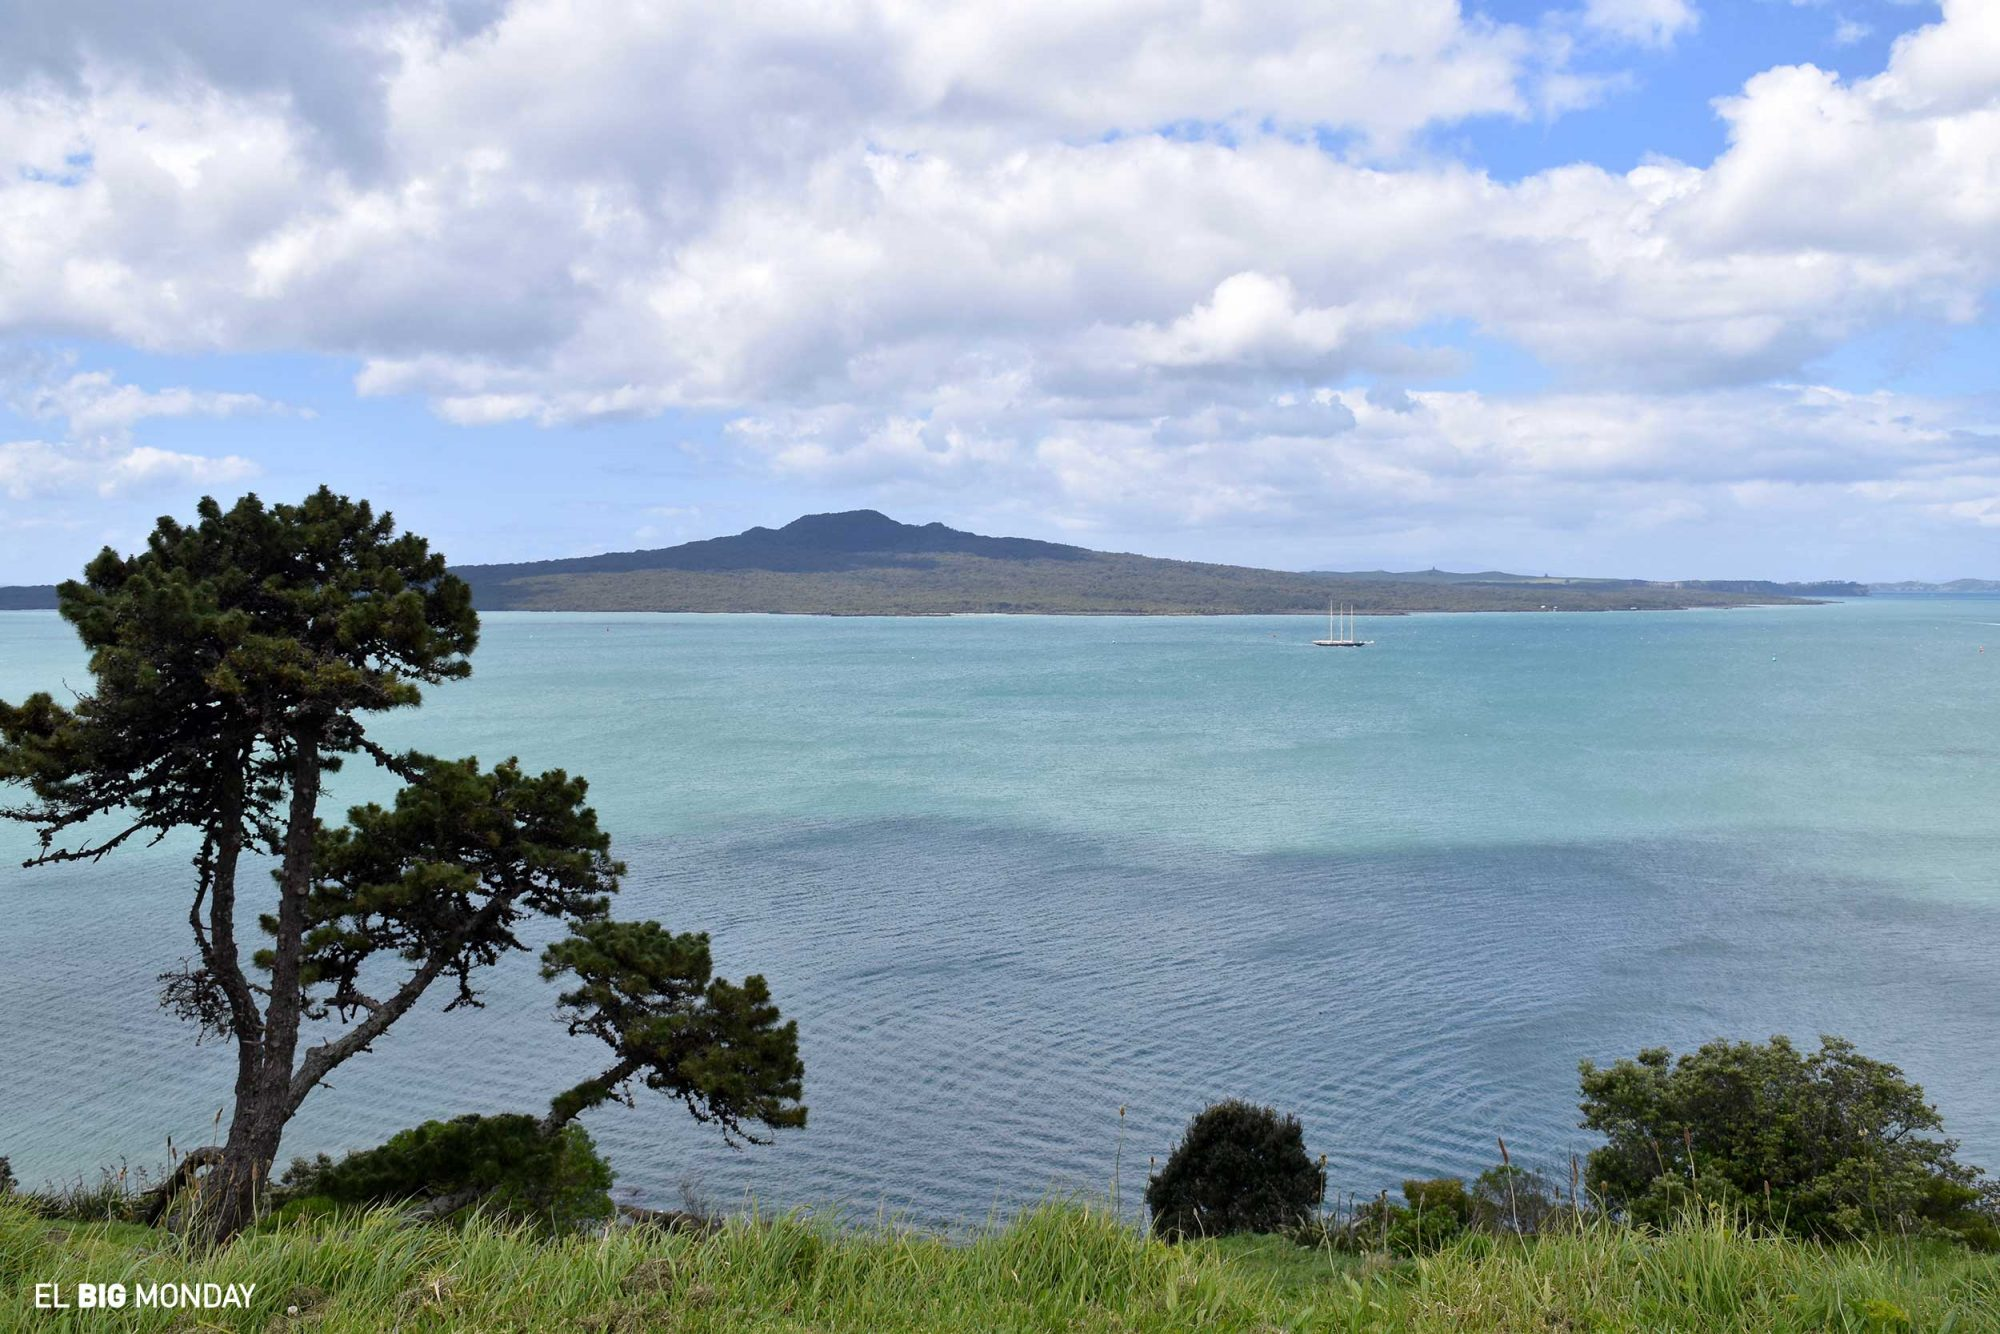 The view from one of Auckland's look out points